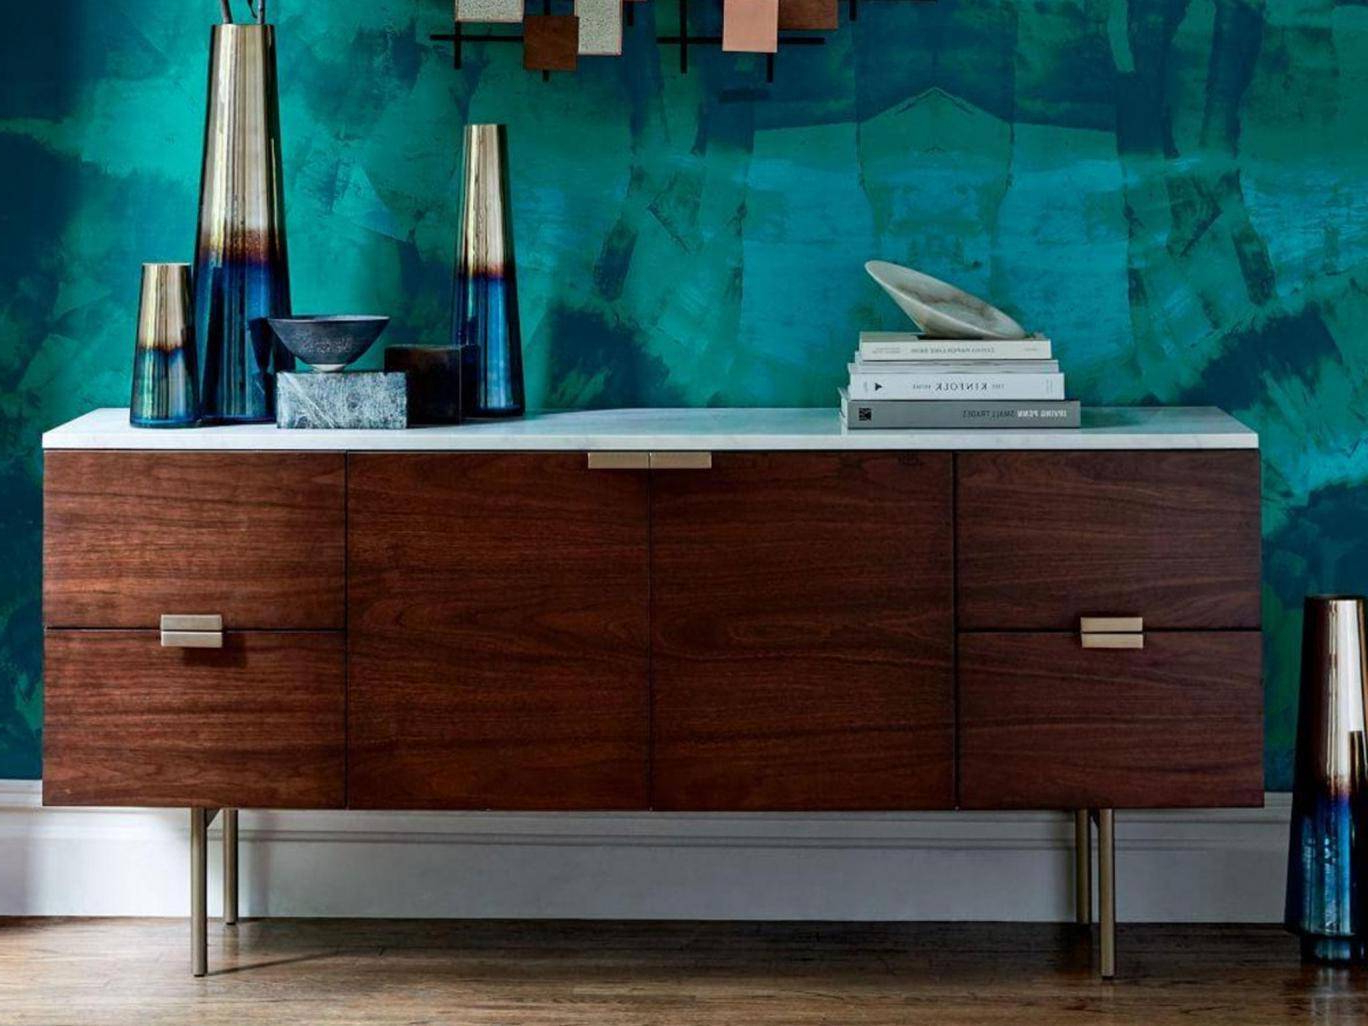 The Independent With Regard To Well Known Solar Refinement Sideboards (View 4 of 20)